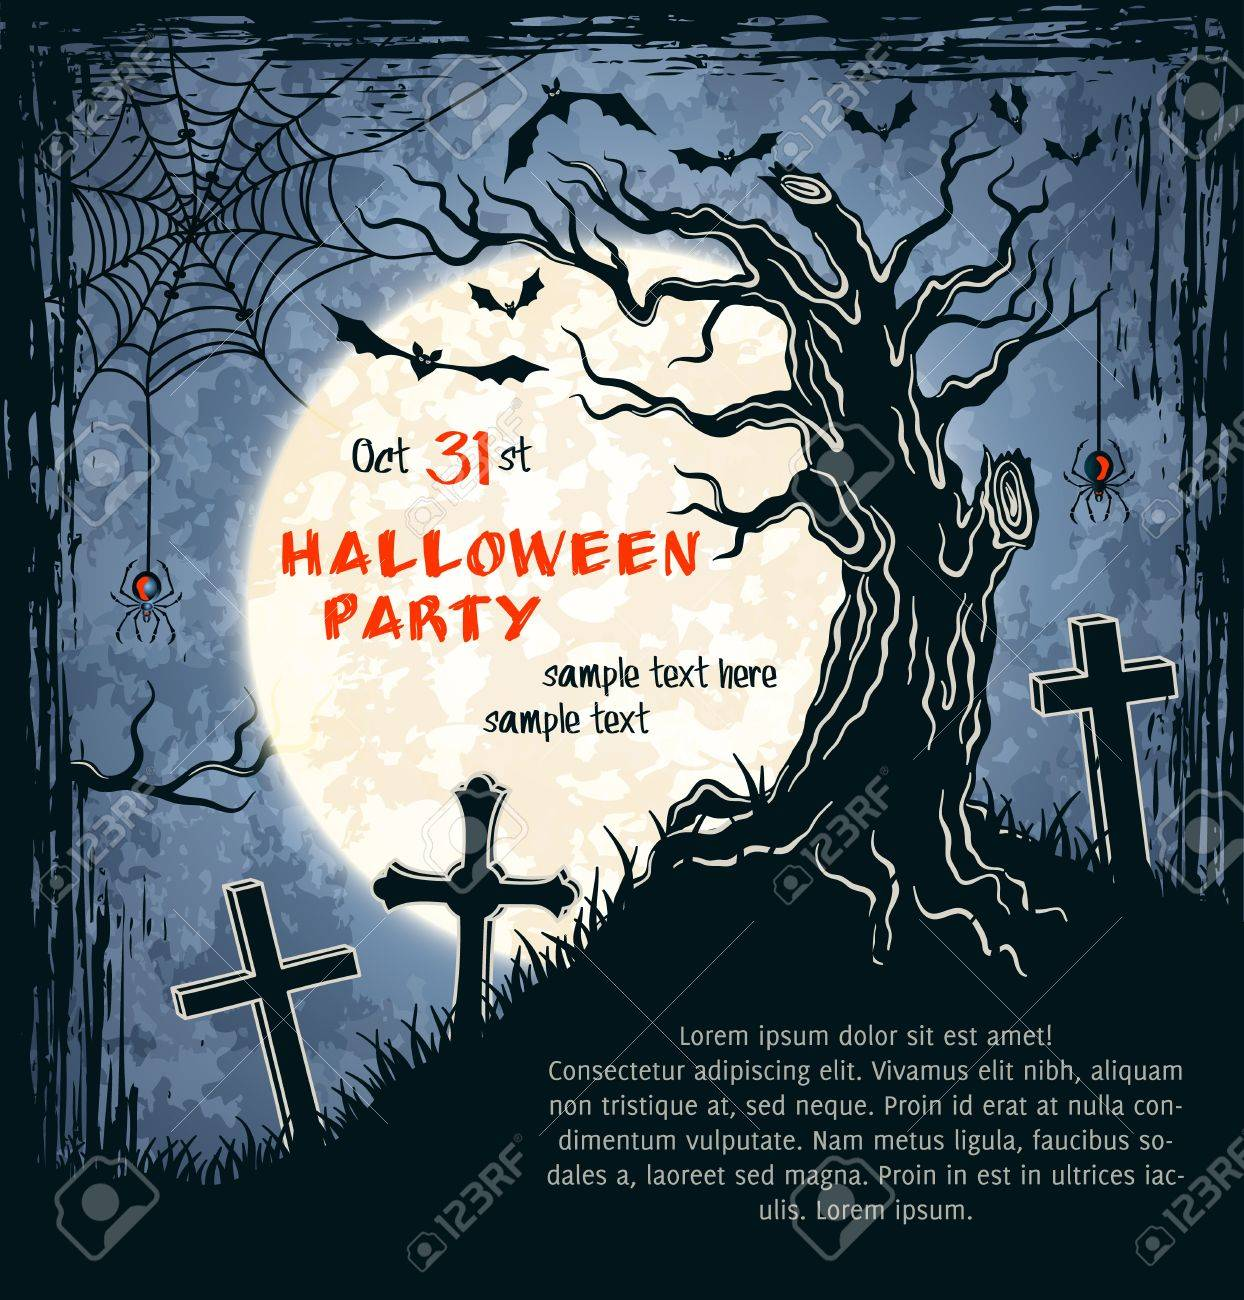 Captivating Spooky Card For Halloween. Blue Background With Clumsy Tree, Full Moon,  Tombstones And